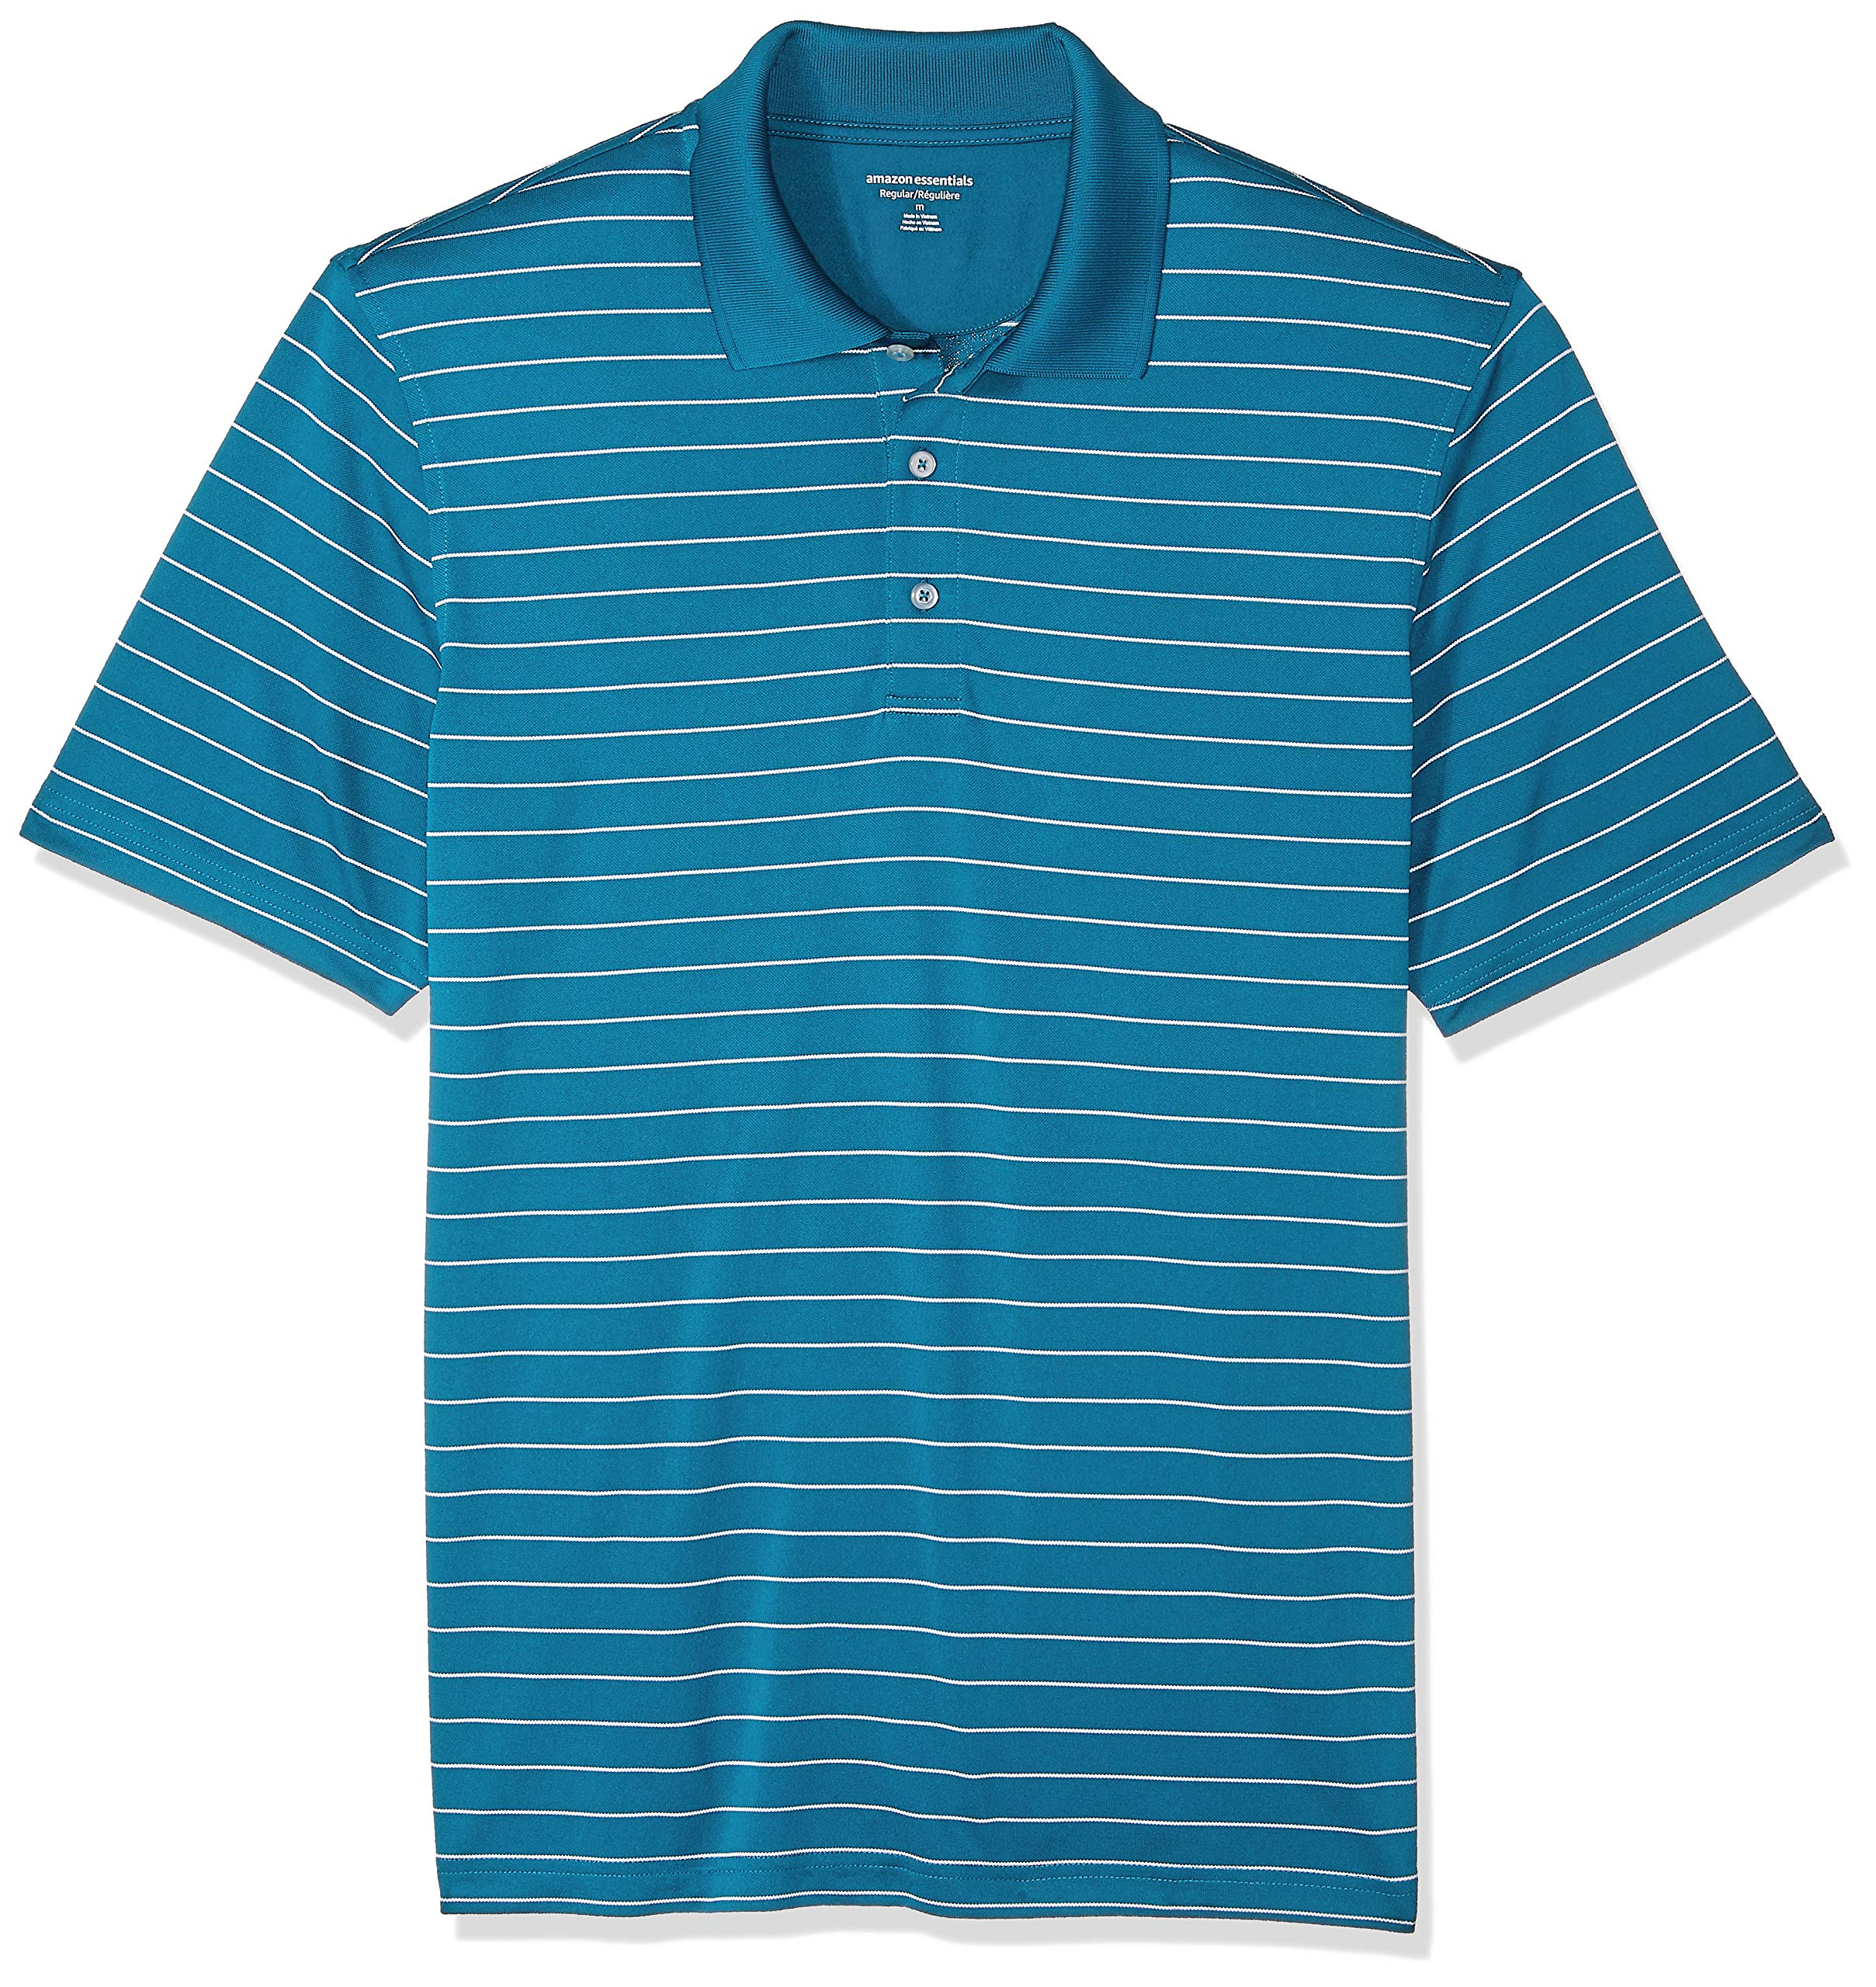 Amazon Essentials Men's Regular-Fit Quick-Dry Golf Polo Shirt, Dark Teal Stripe, X-Small